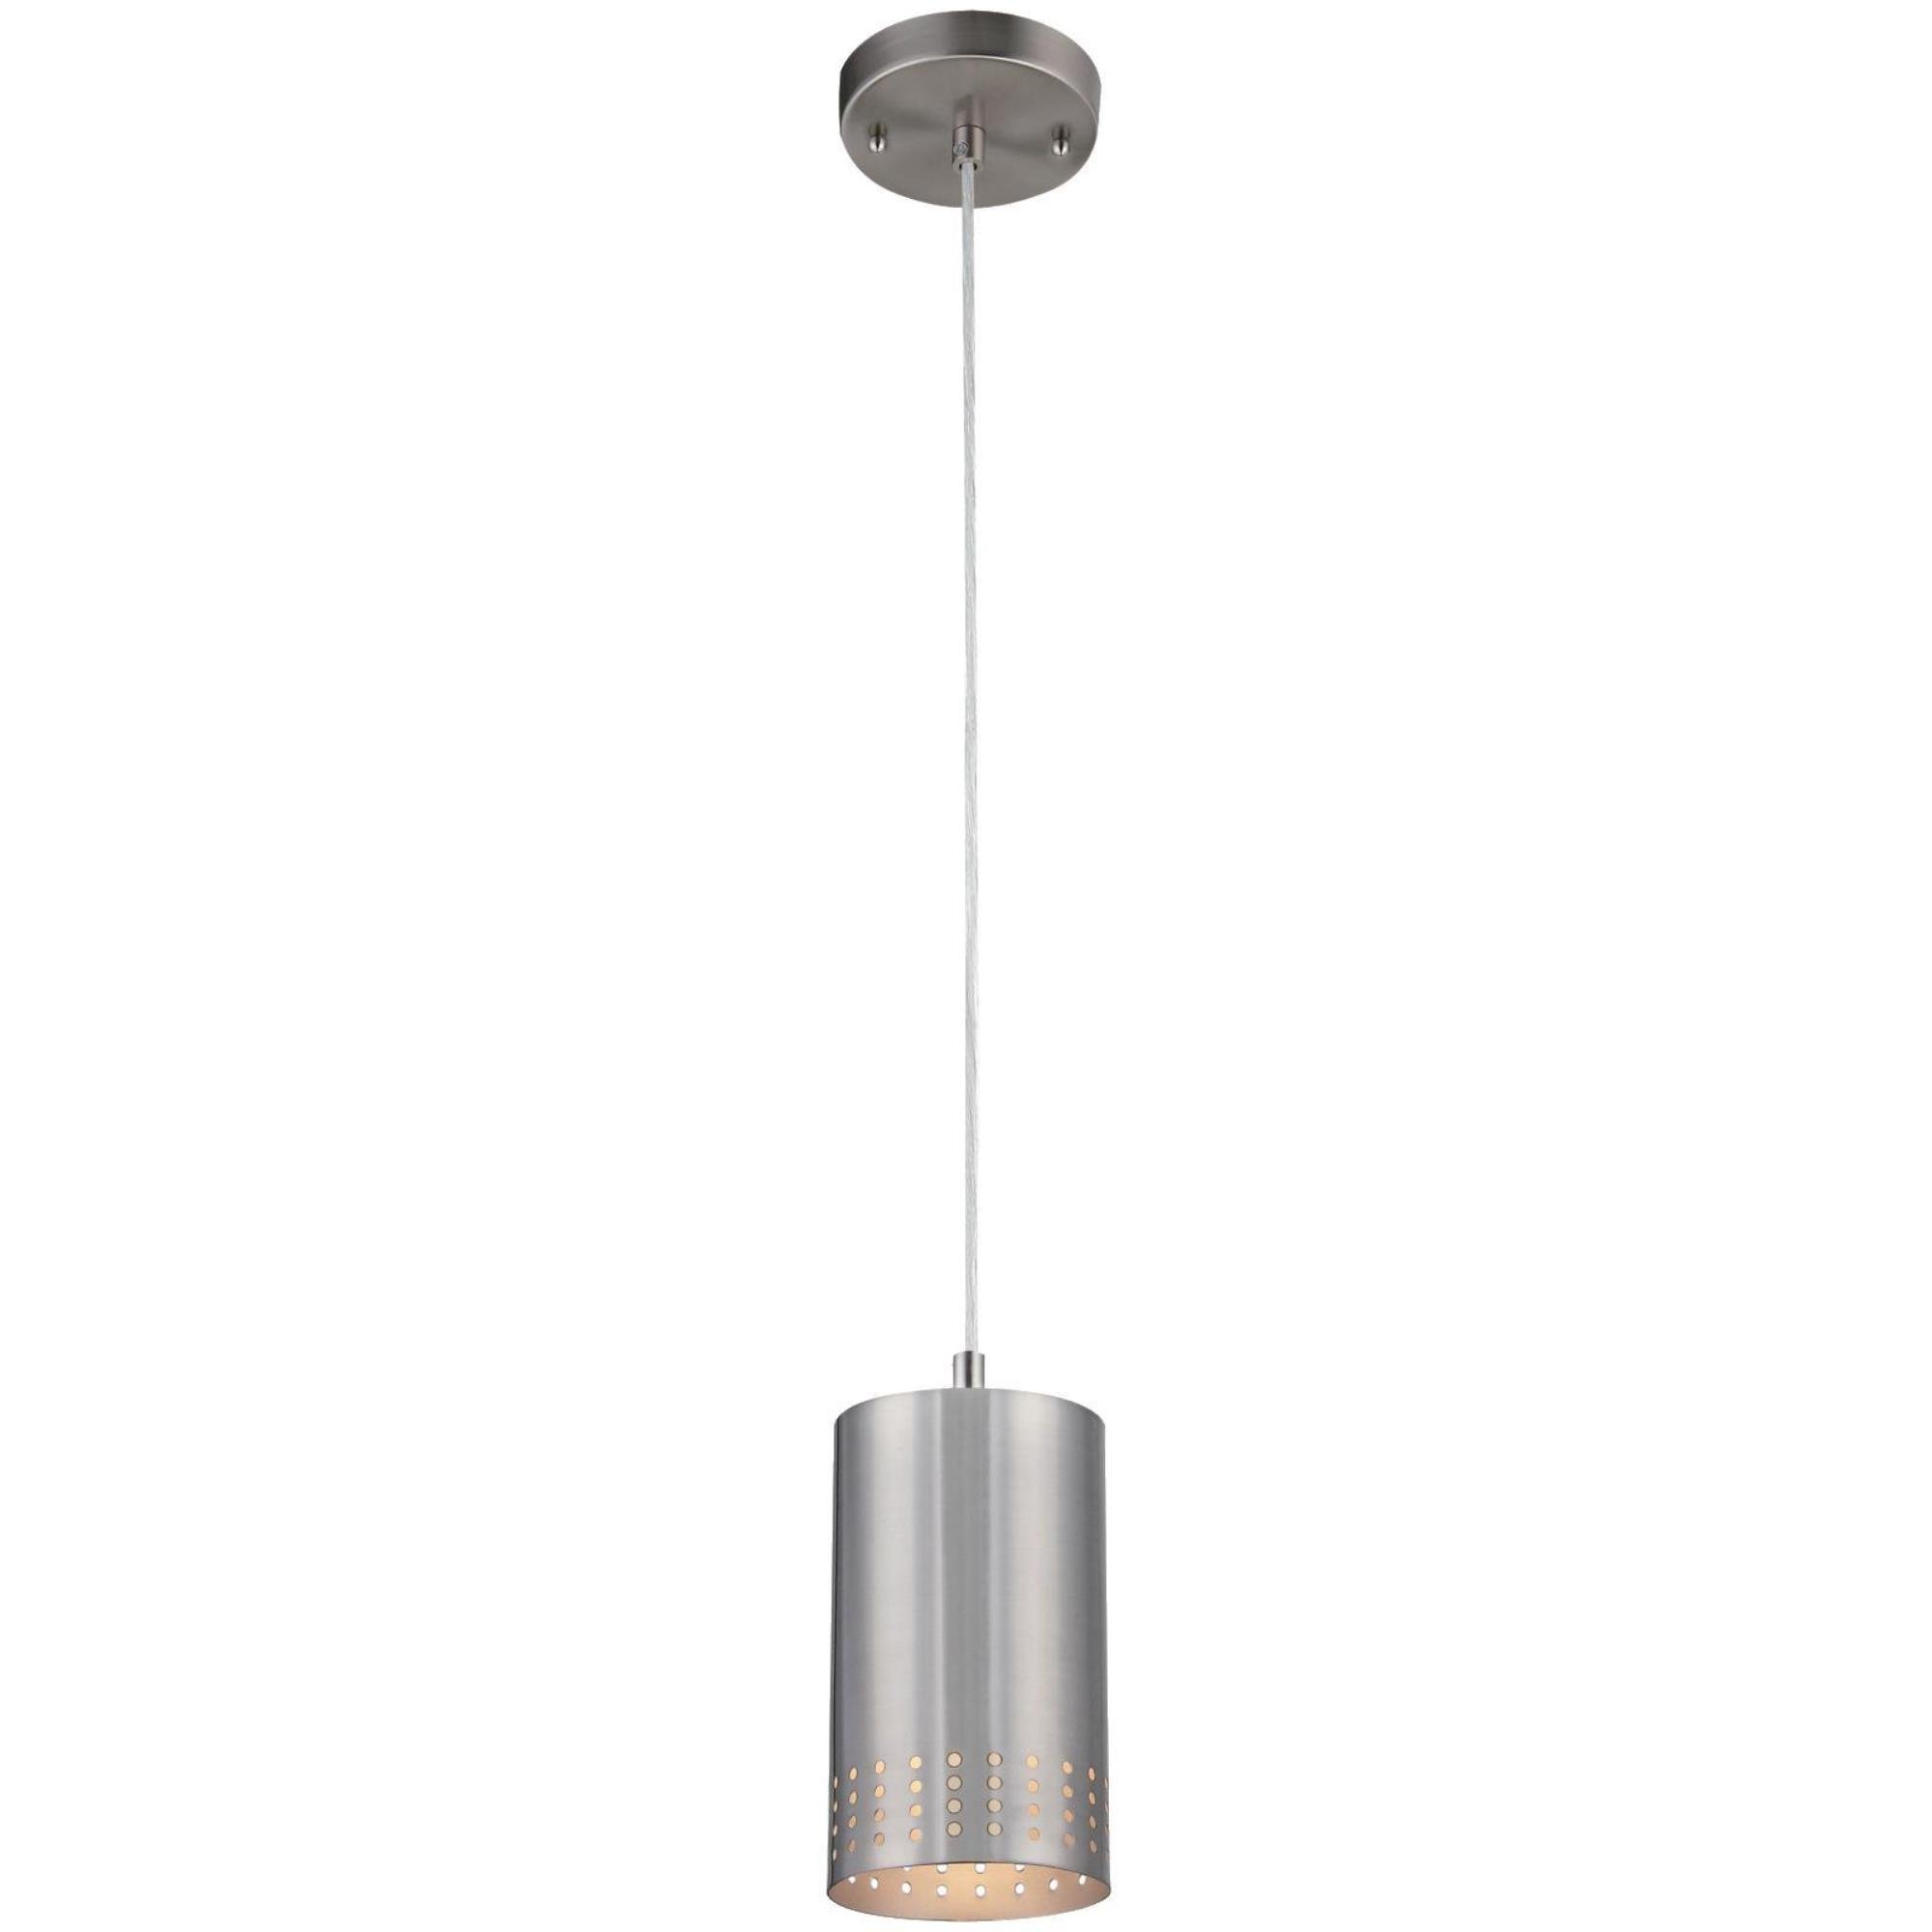 Westinghouse 6101200 Contemporary One-Light Adjustable Mini Pendant with Perforated Cylindrical Metal Shade, Brushed Nickel Finish